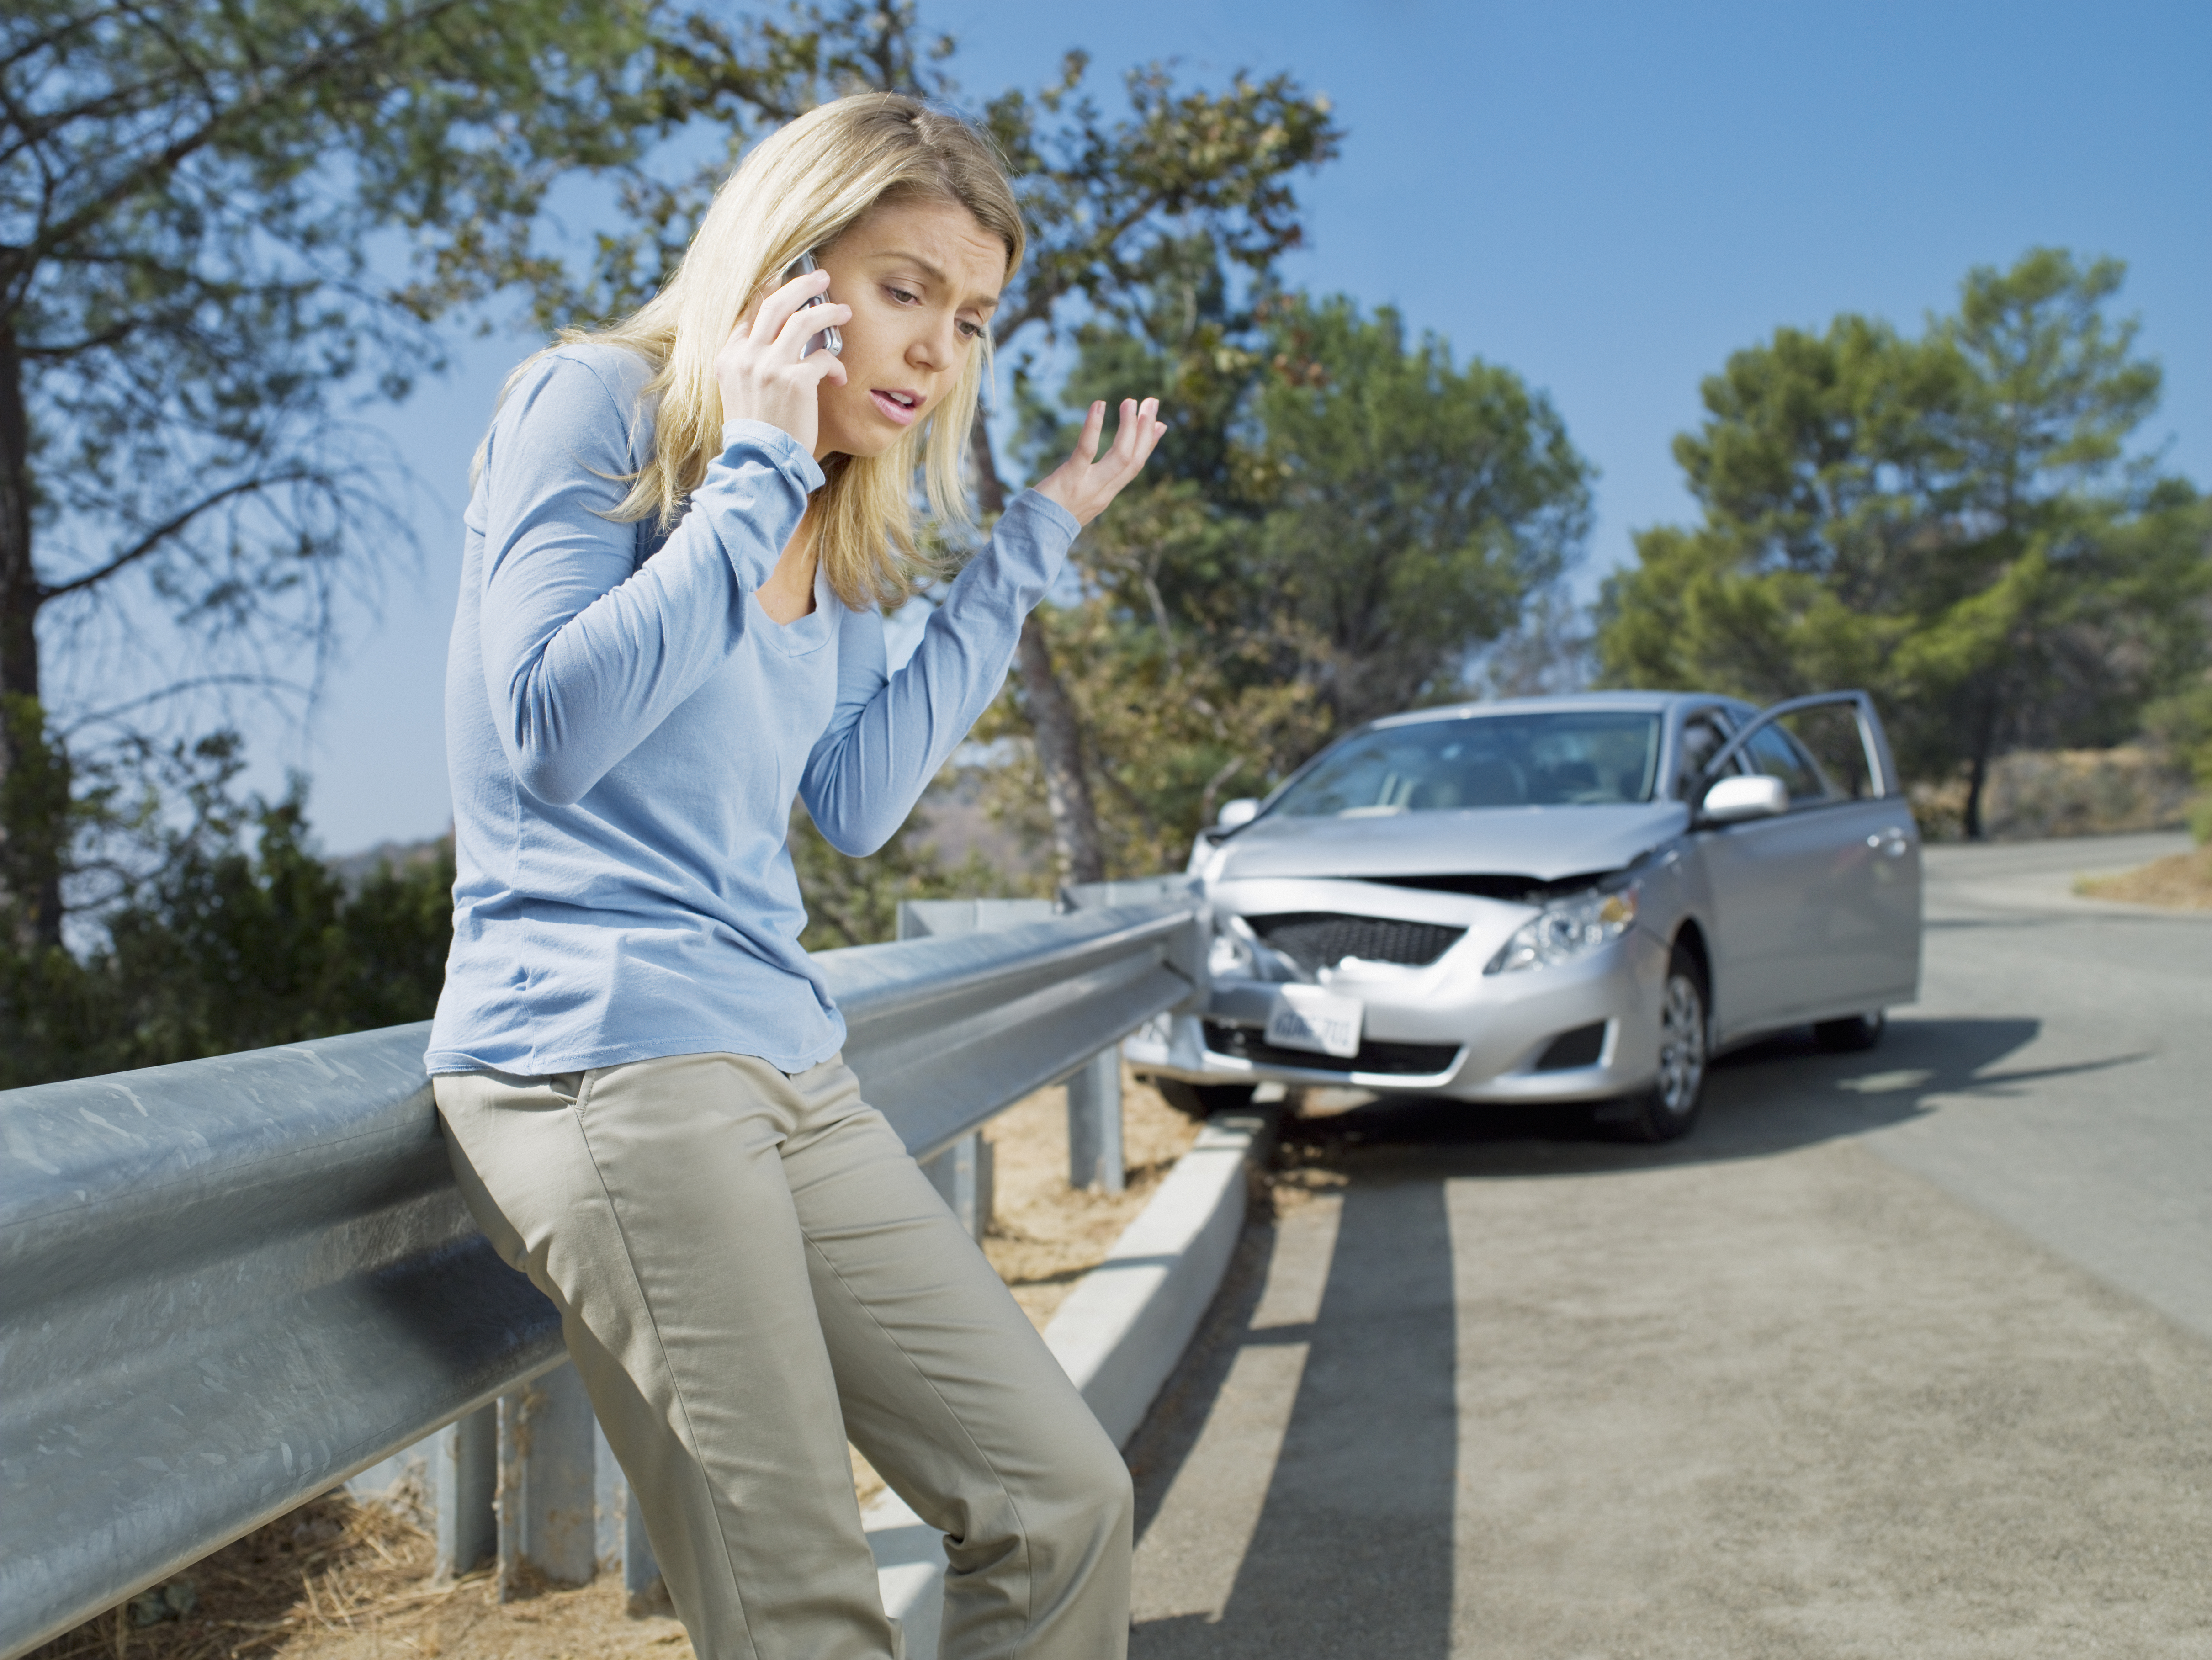 Medicaid and Insurance Coveage Car Accident